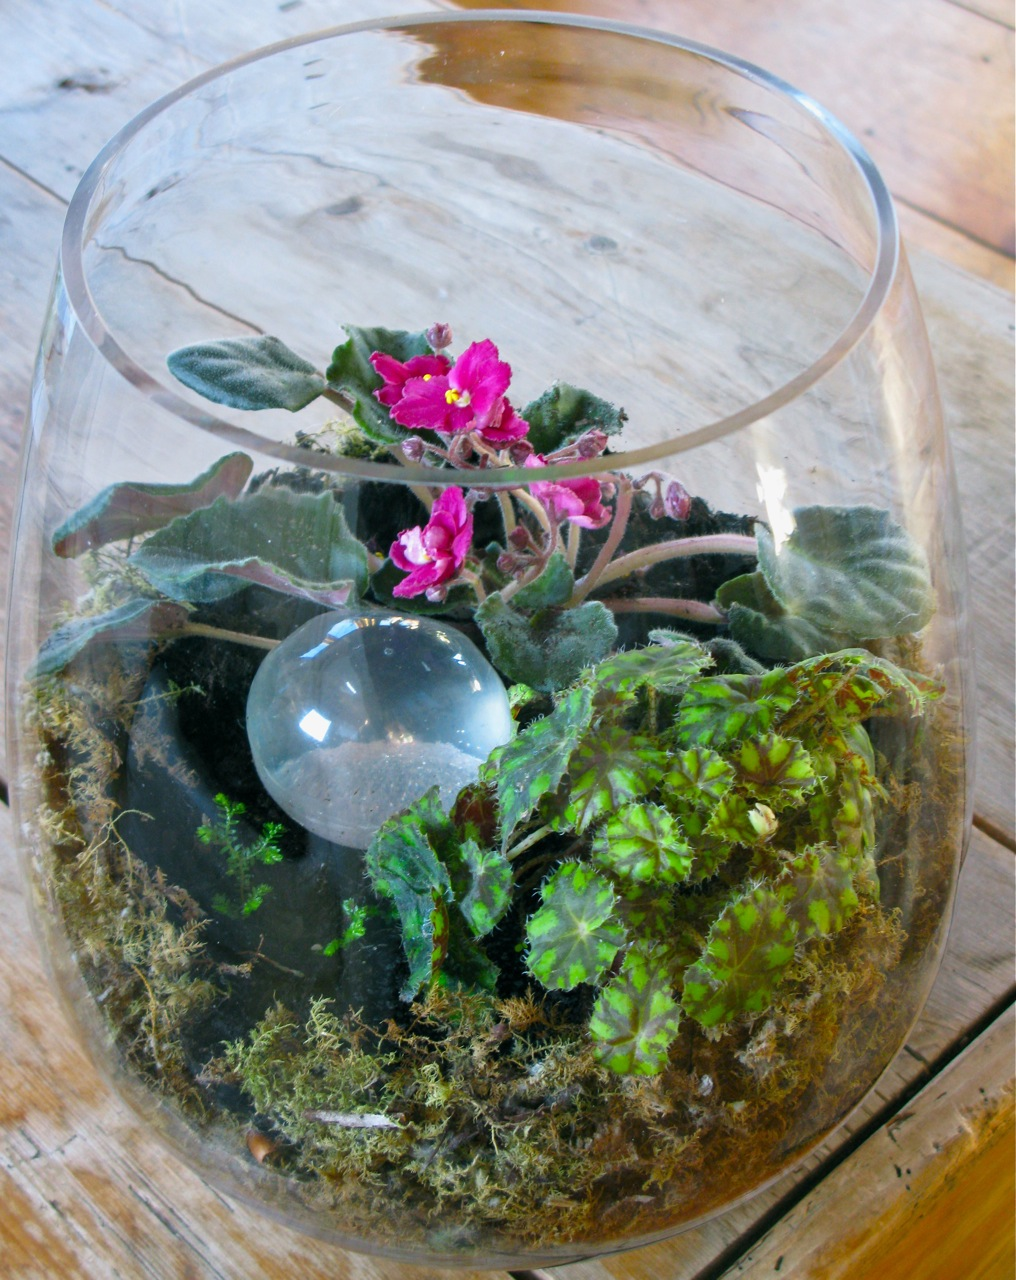 Lush Foliage For Low Light Rooms Terrarium Bowls Continued The